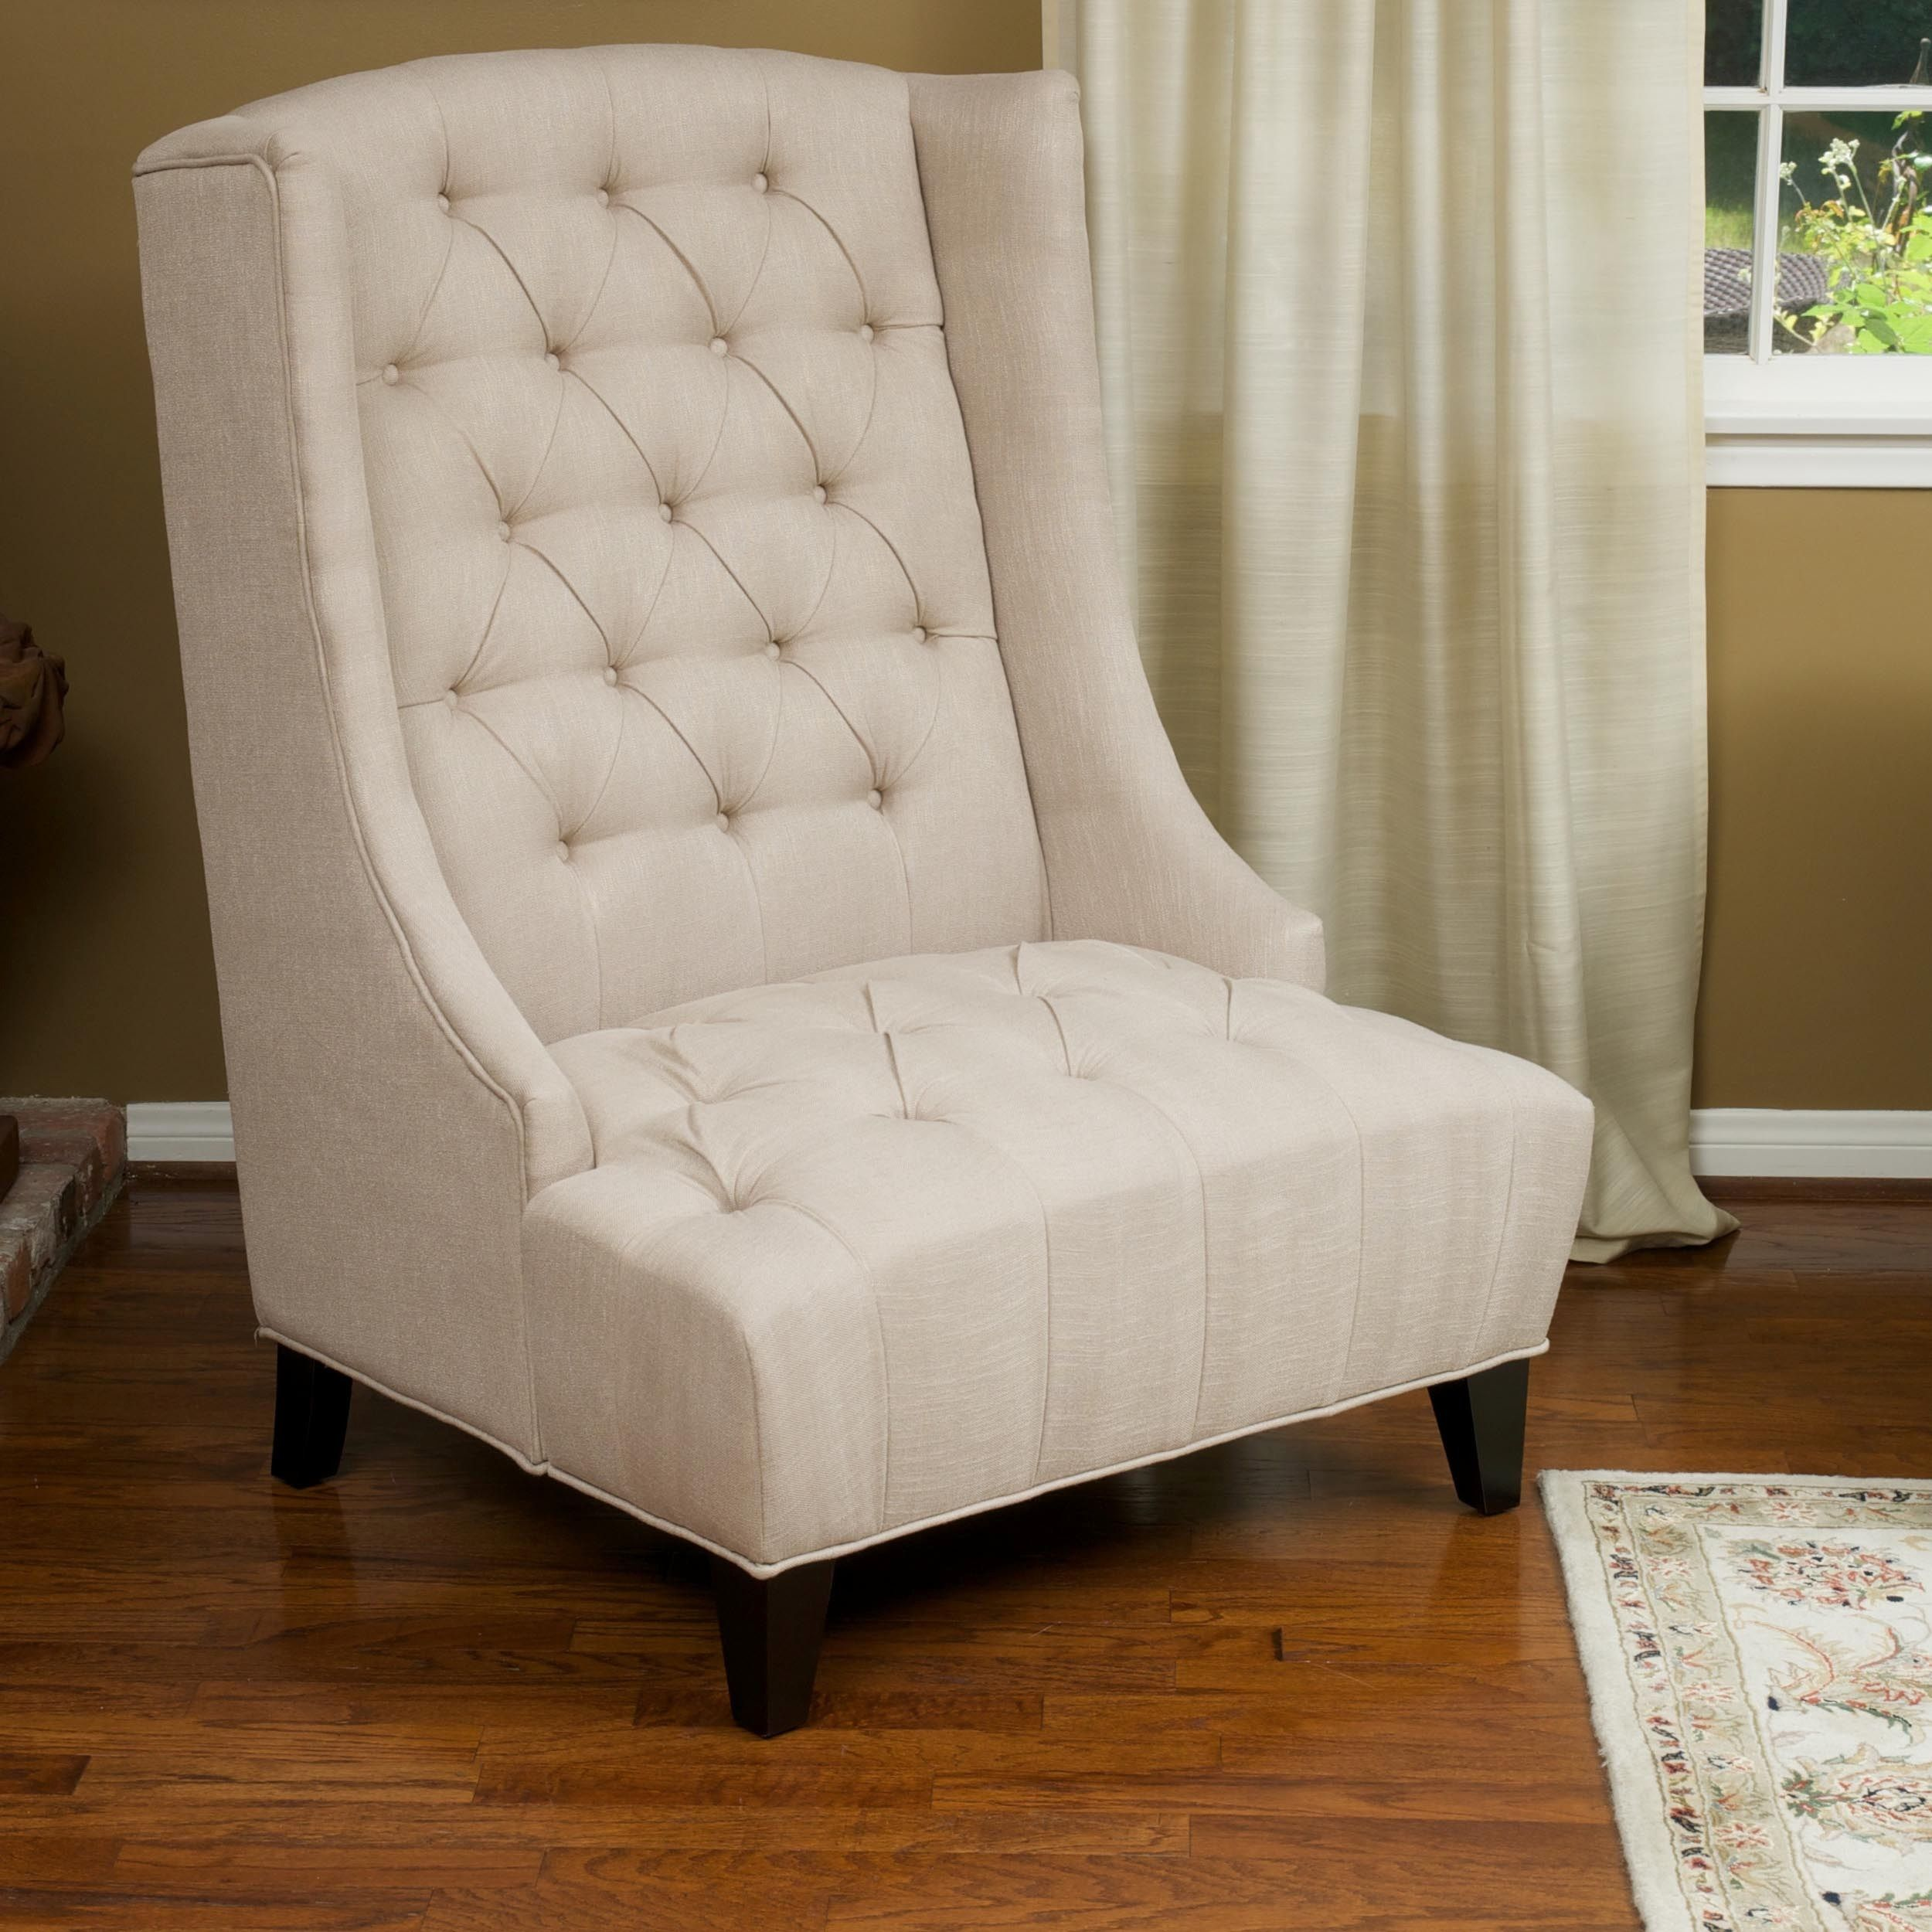 From the well padded tufted back to the wide seat design, the Miles ...